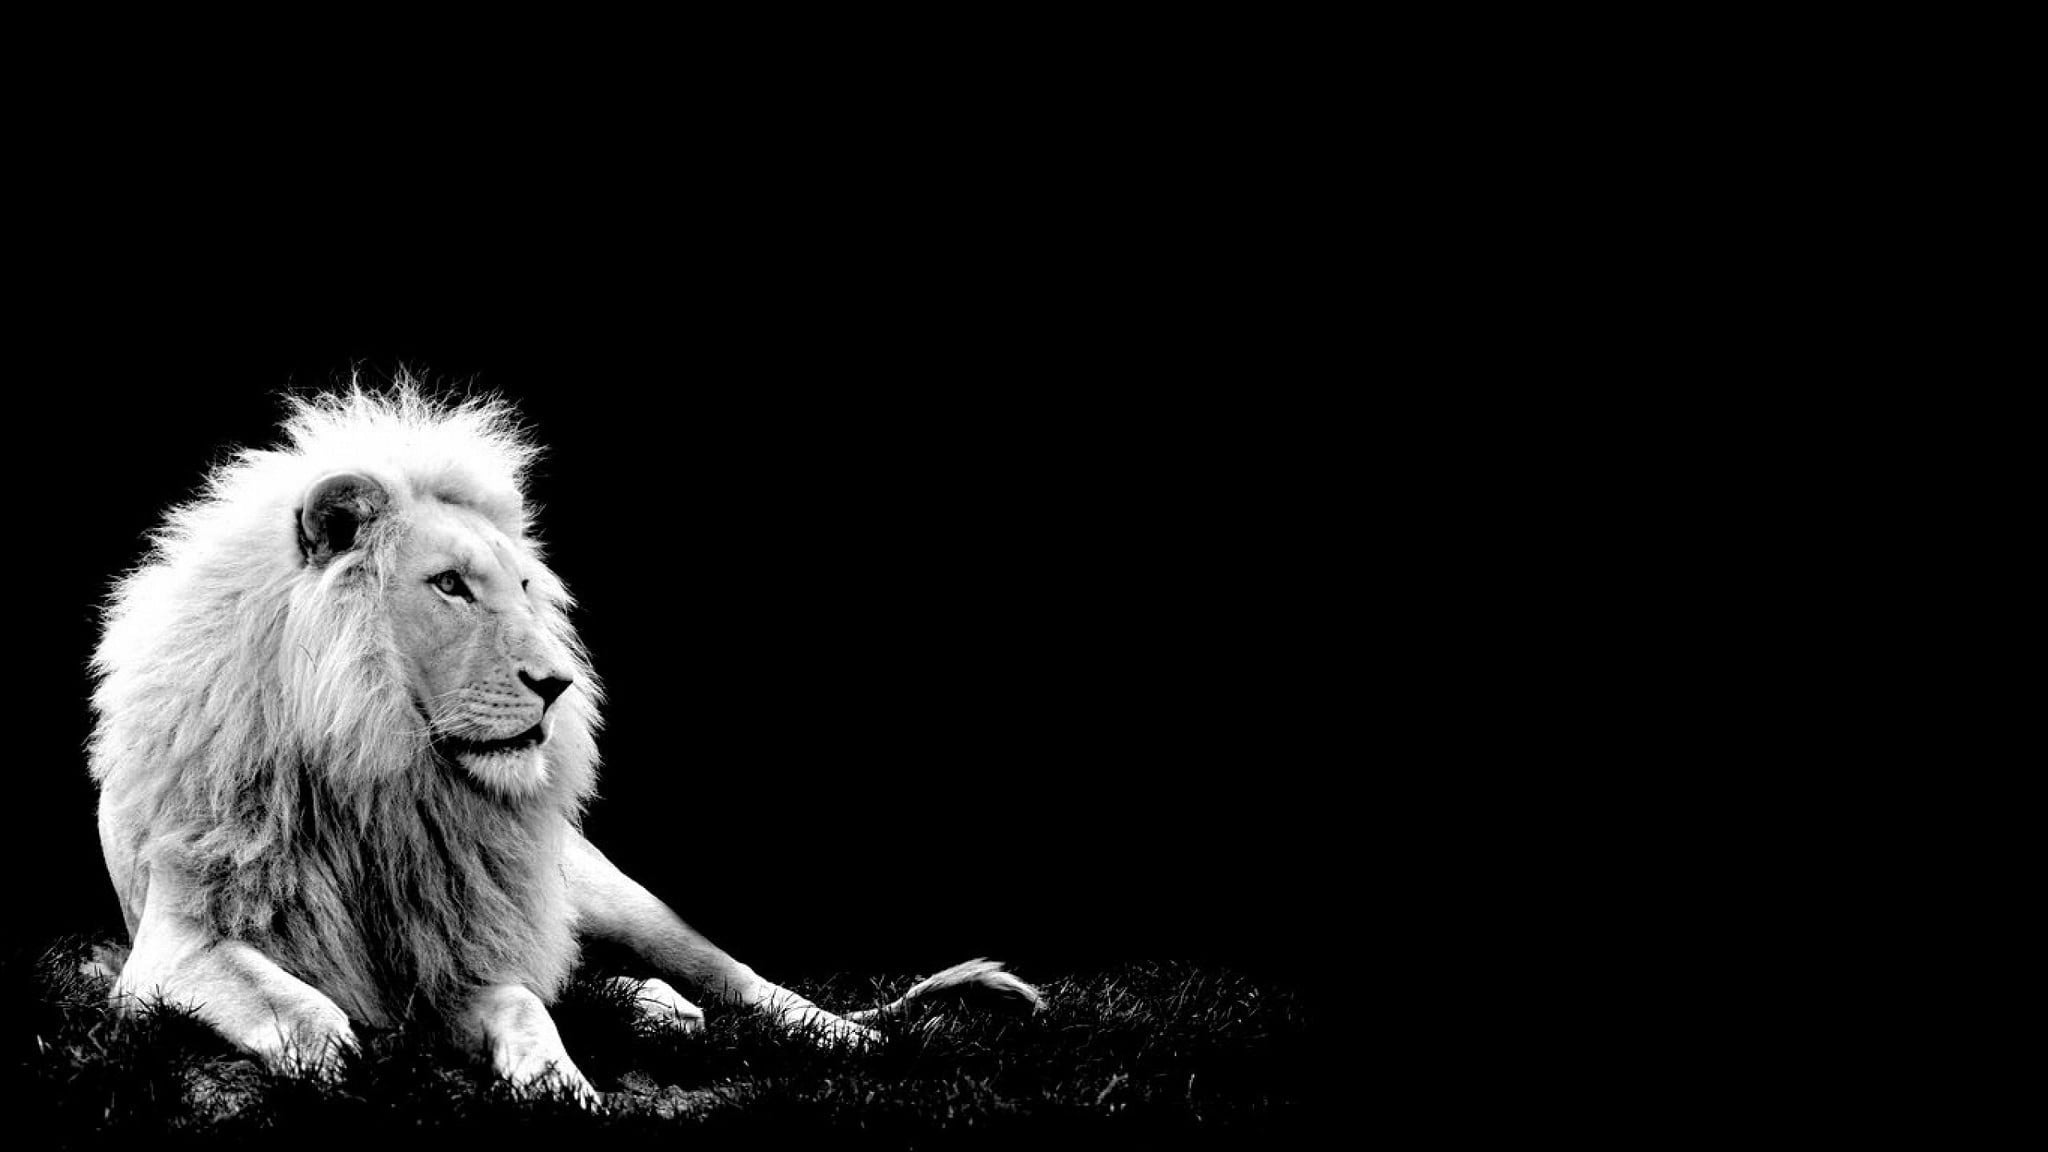 White Lion Wallpaper - WallpaperSafari